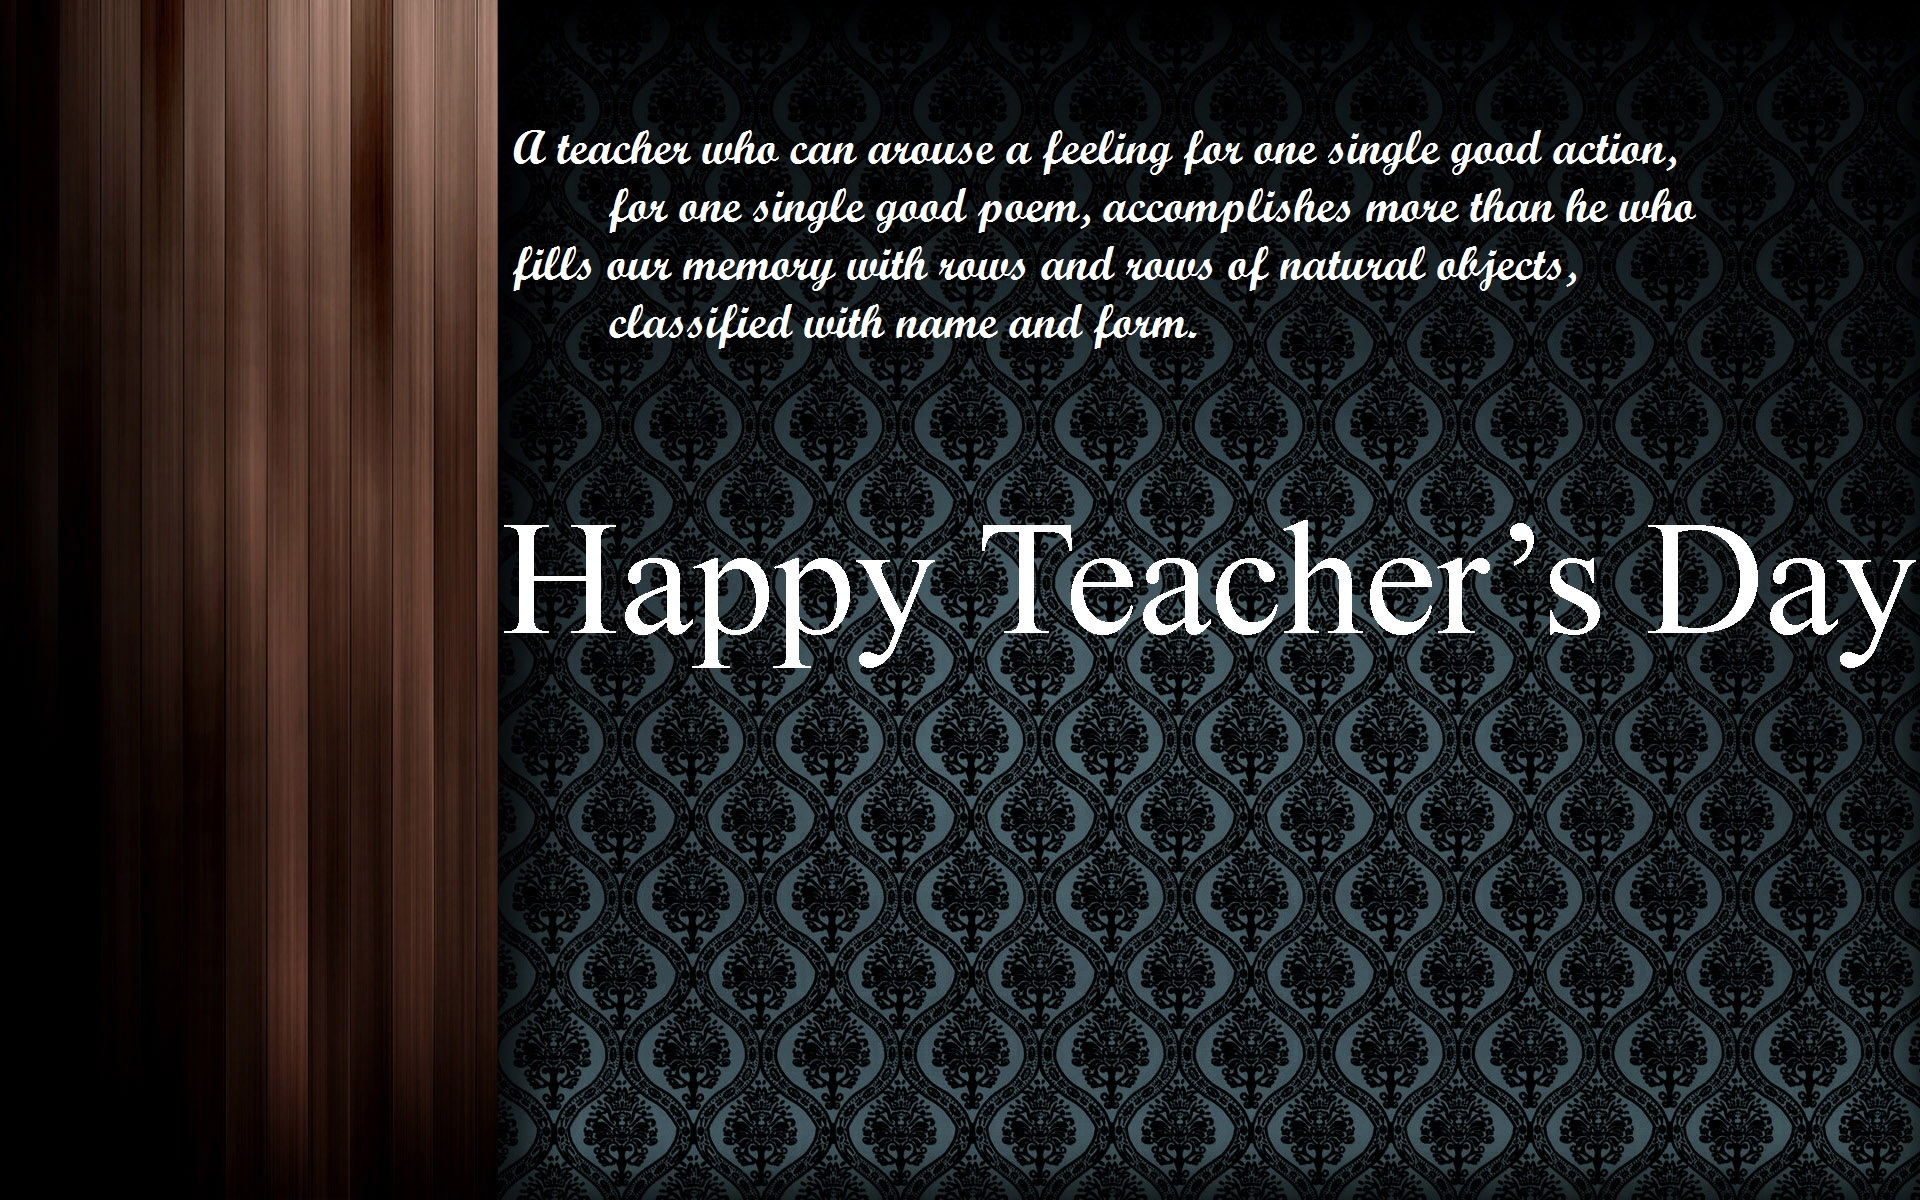 2017} happy teachers day hd images, wallpapers, pics, and photos